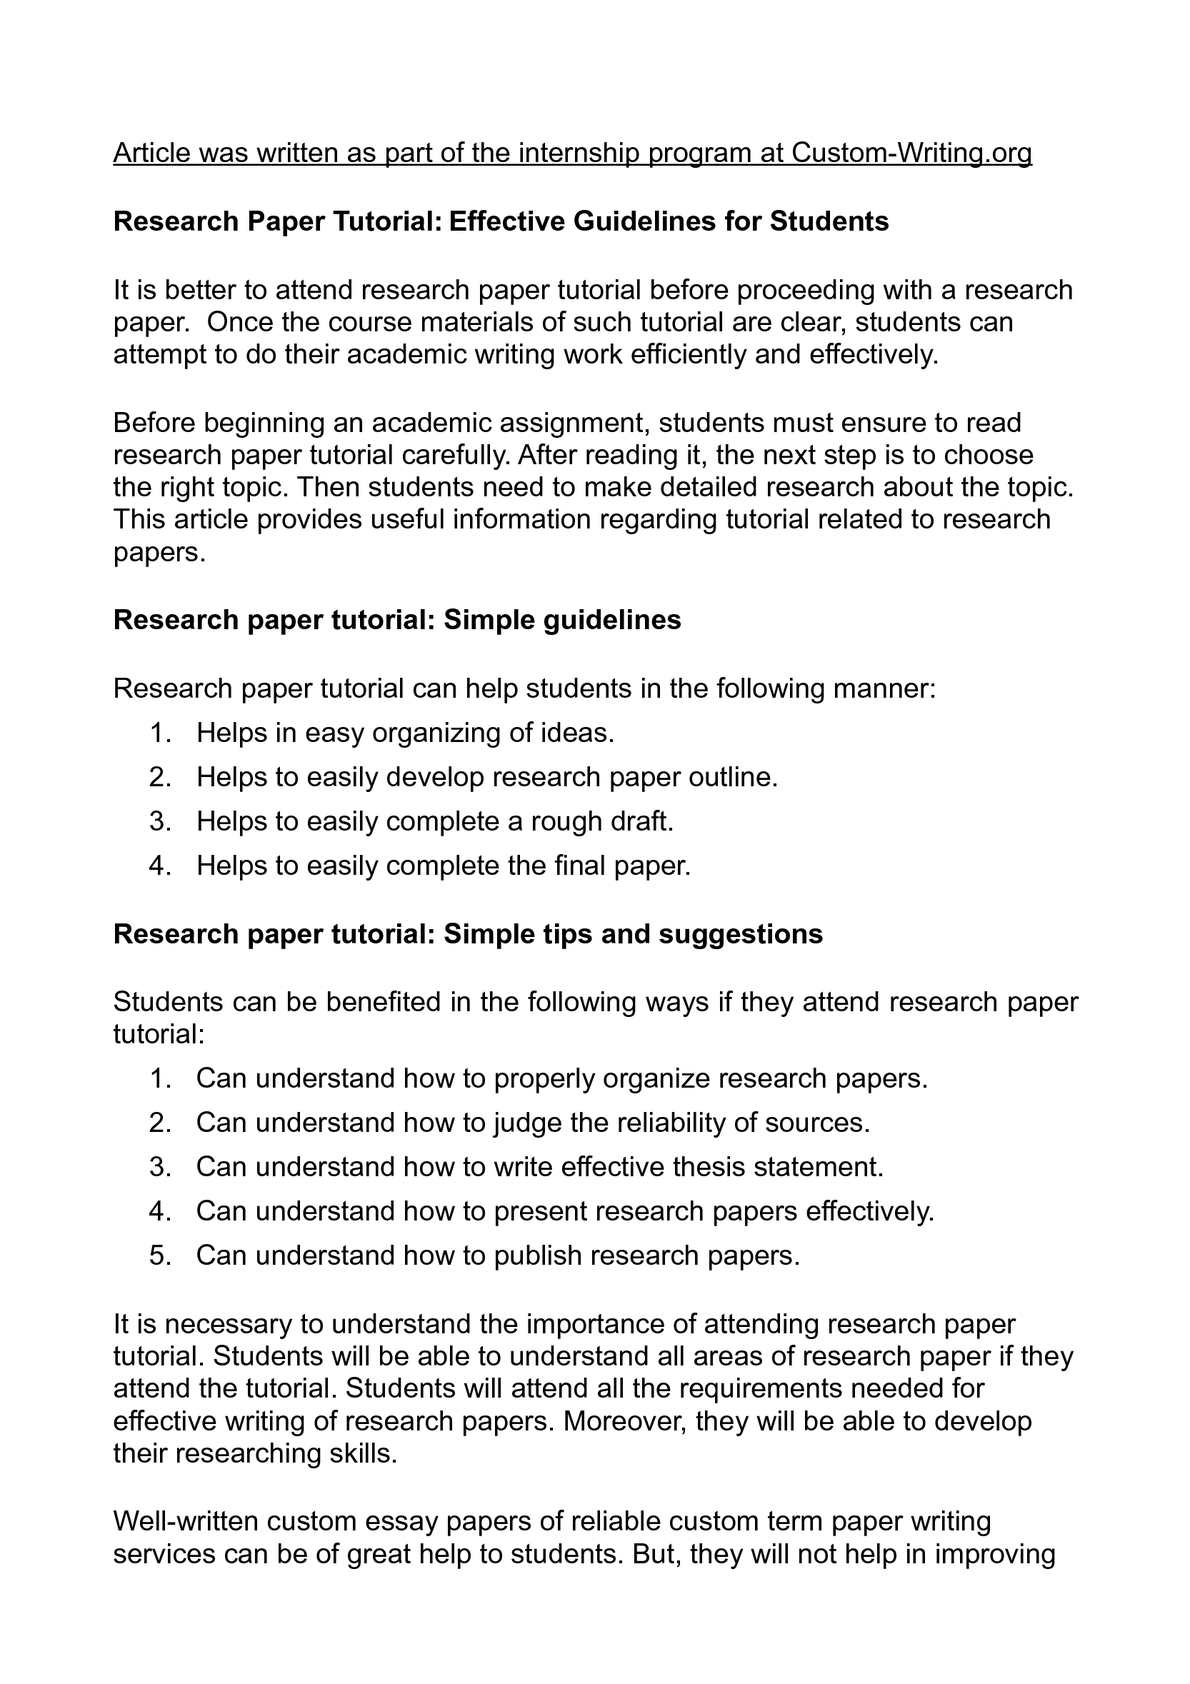 010 Custom Writing Research Papers Paper Exceptional Full